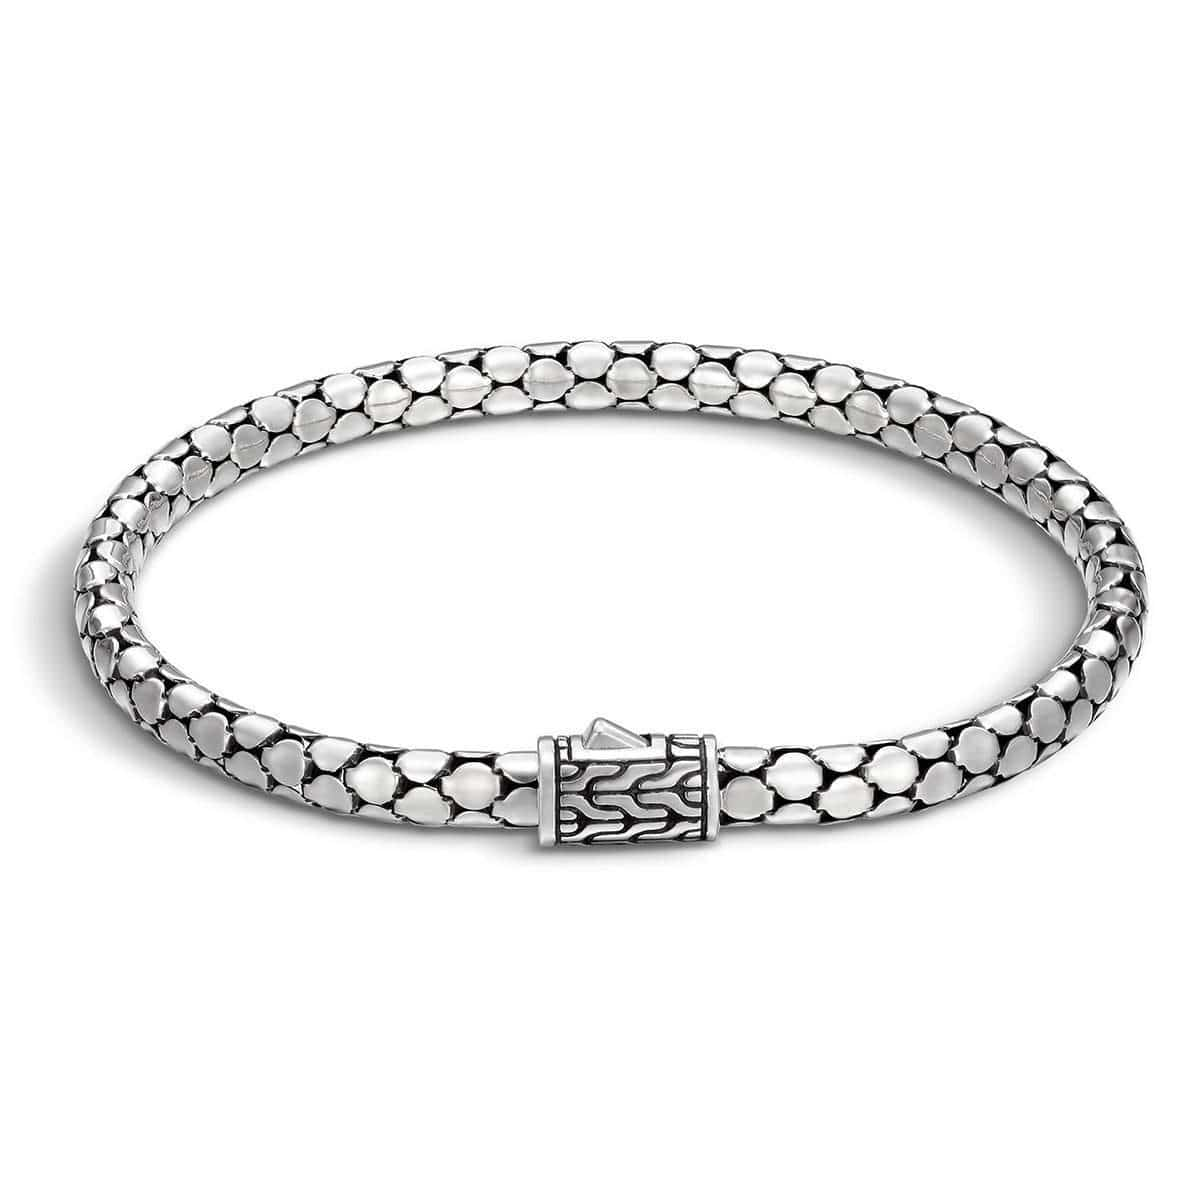 Dot Silver Small Chain Bracelet - BB34386-John Hardy-Renee Taylor Gallery